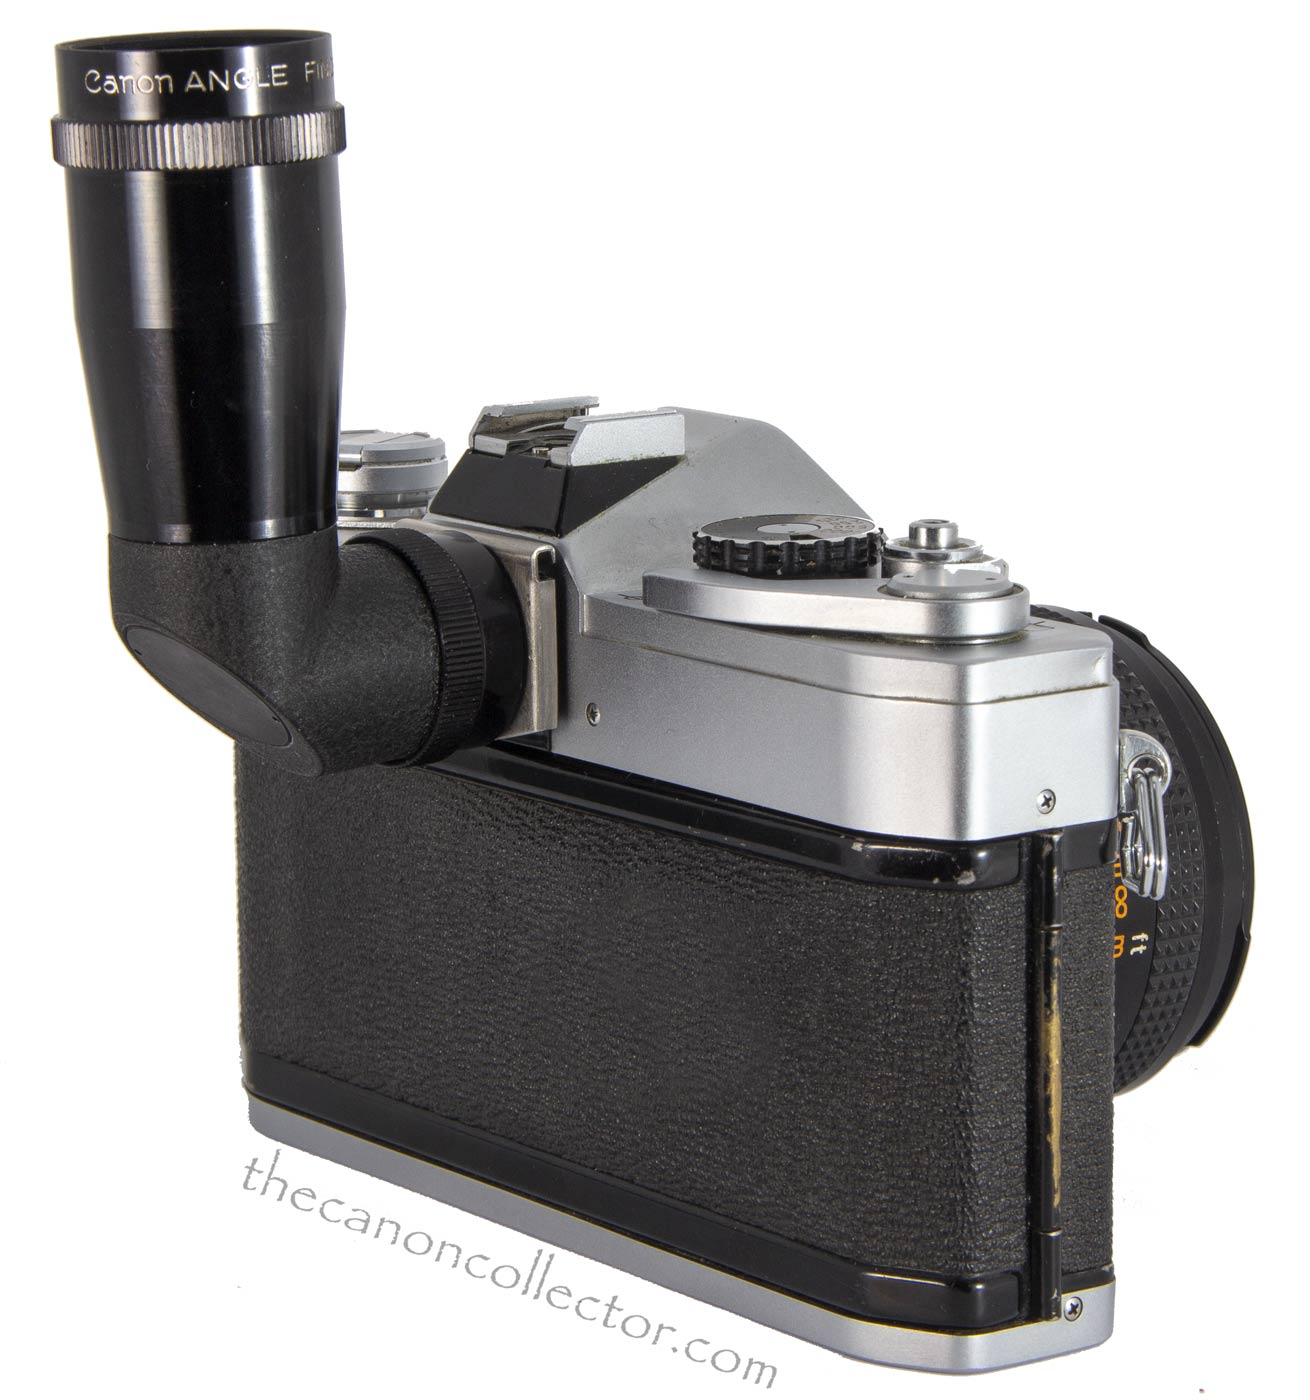 Canon Angle Finder A